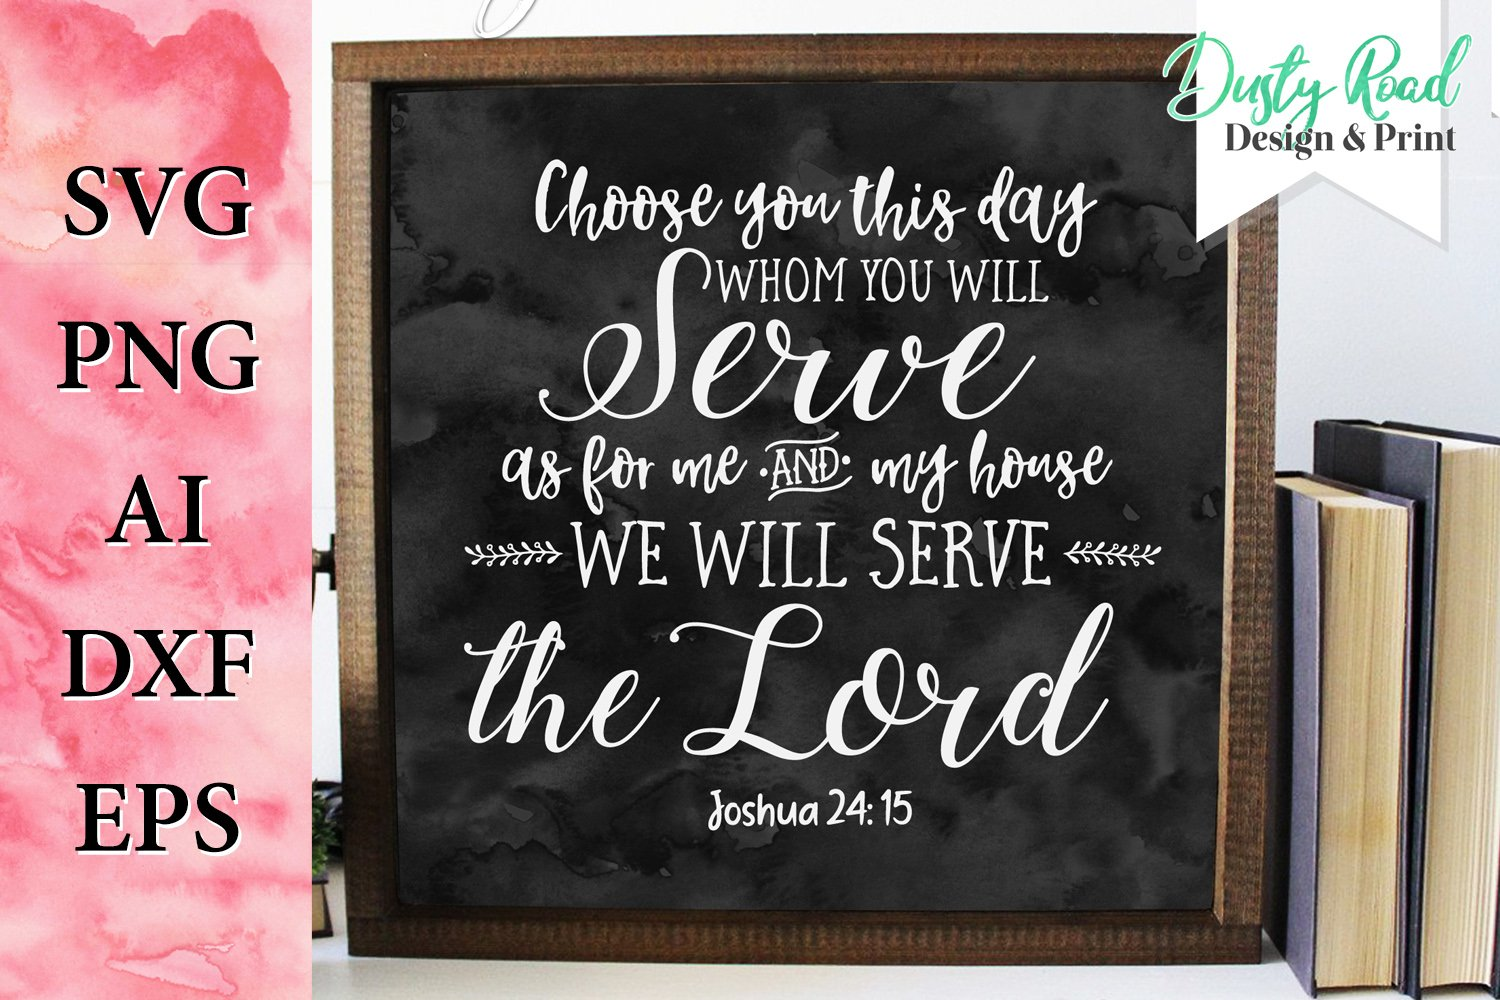 SVG & PNG - bible verse - as for me and my house example image 2